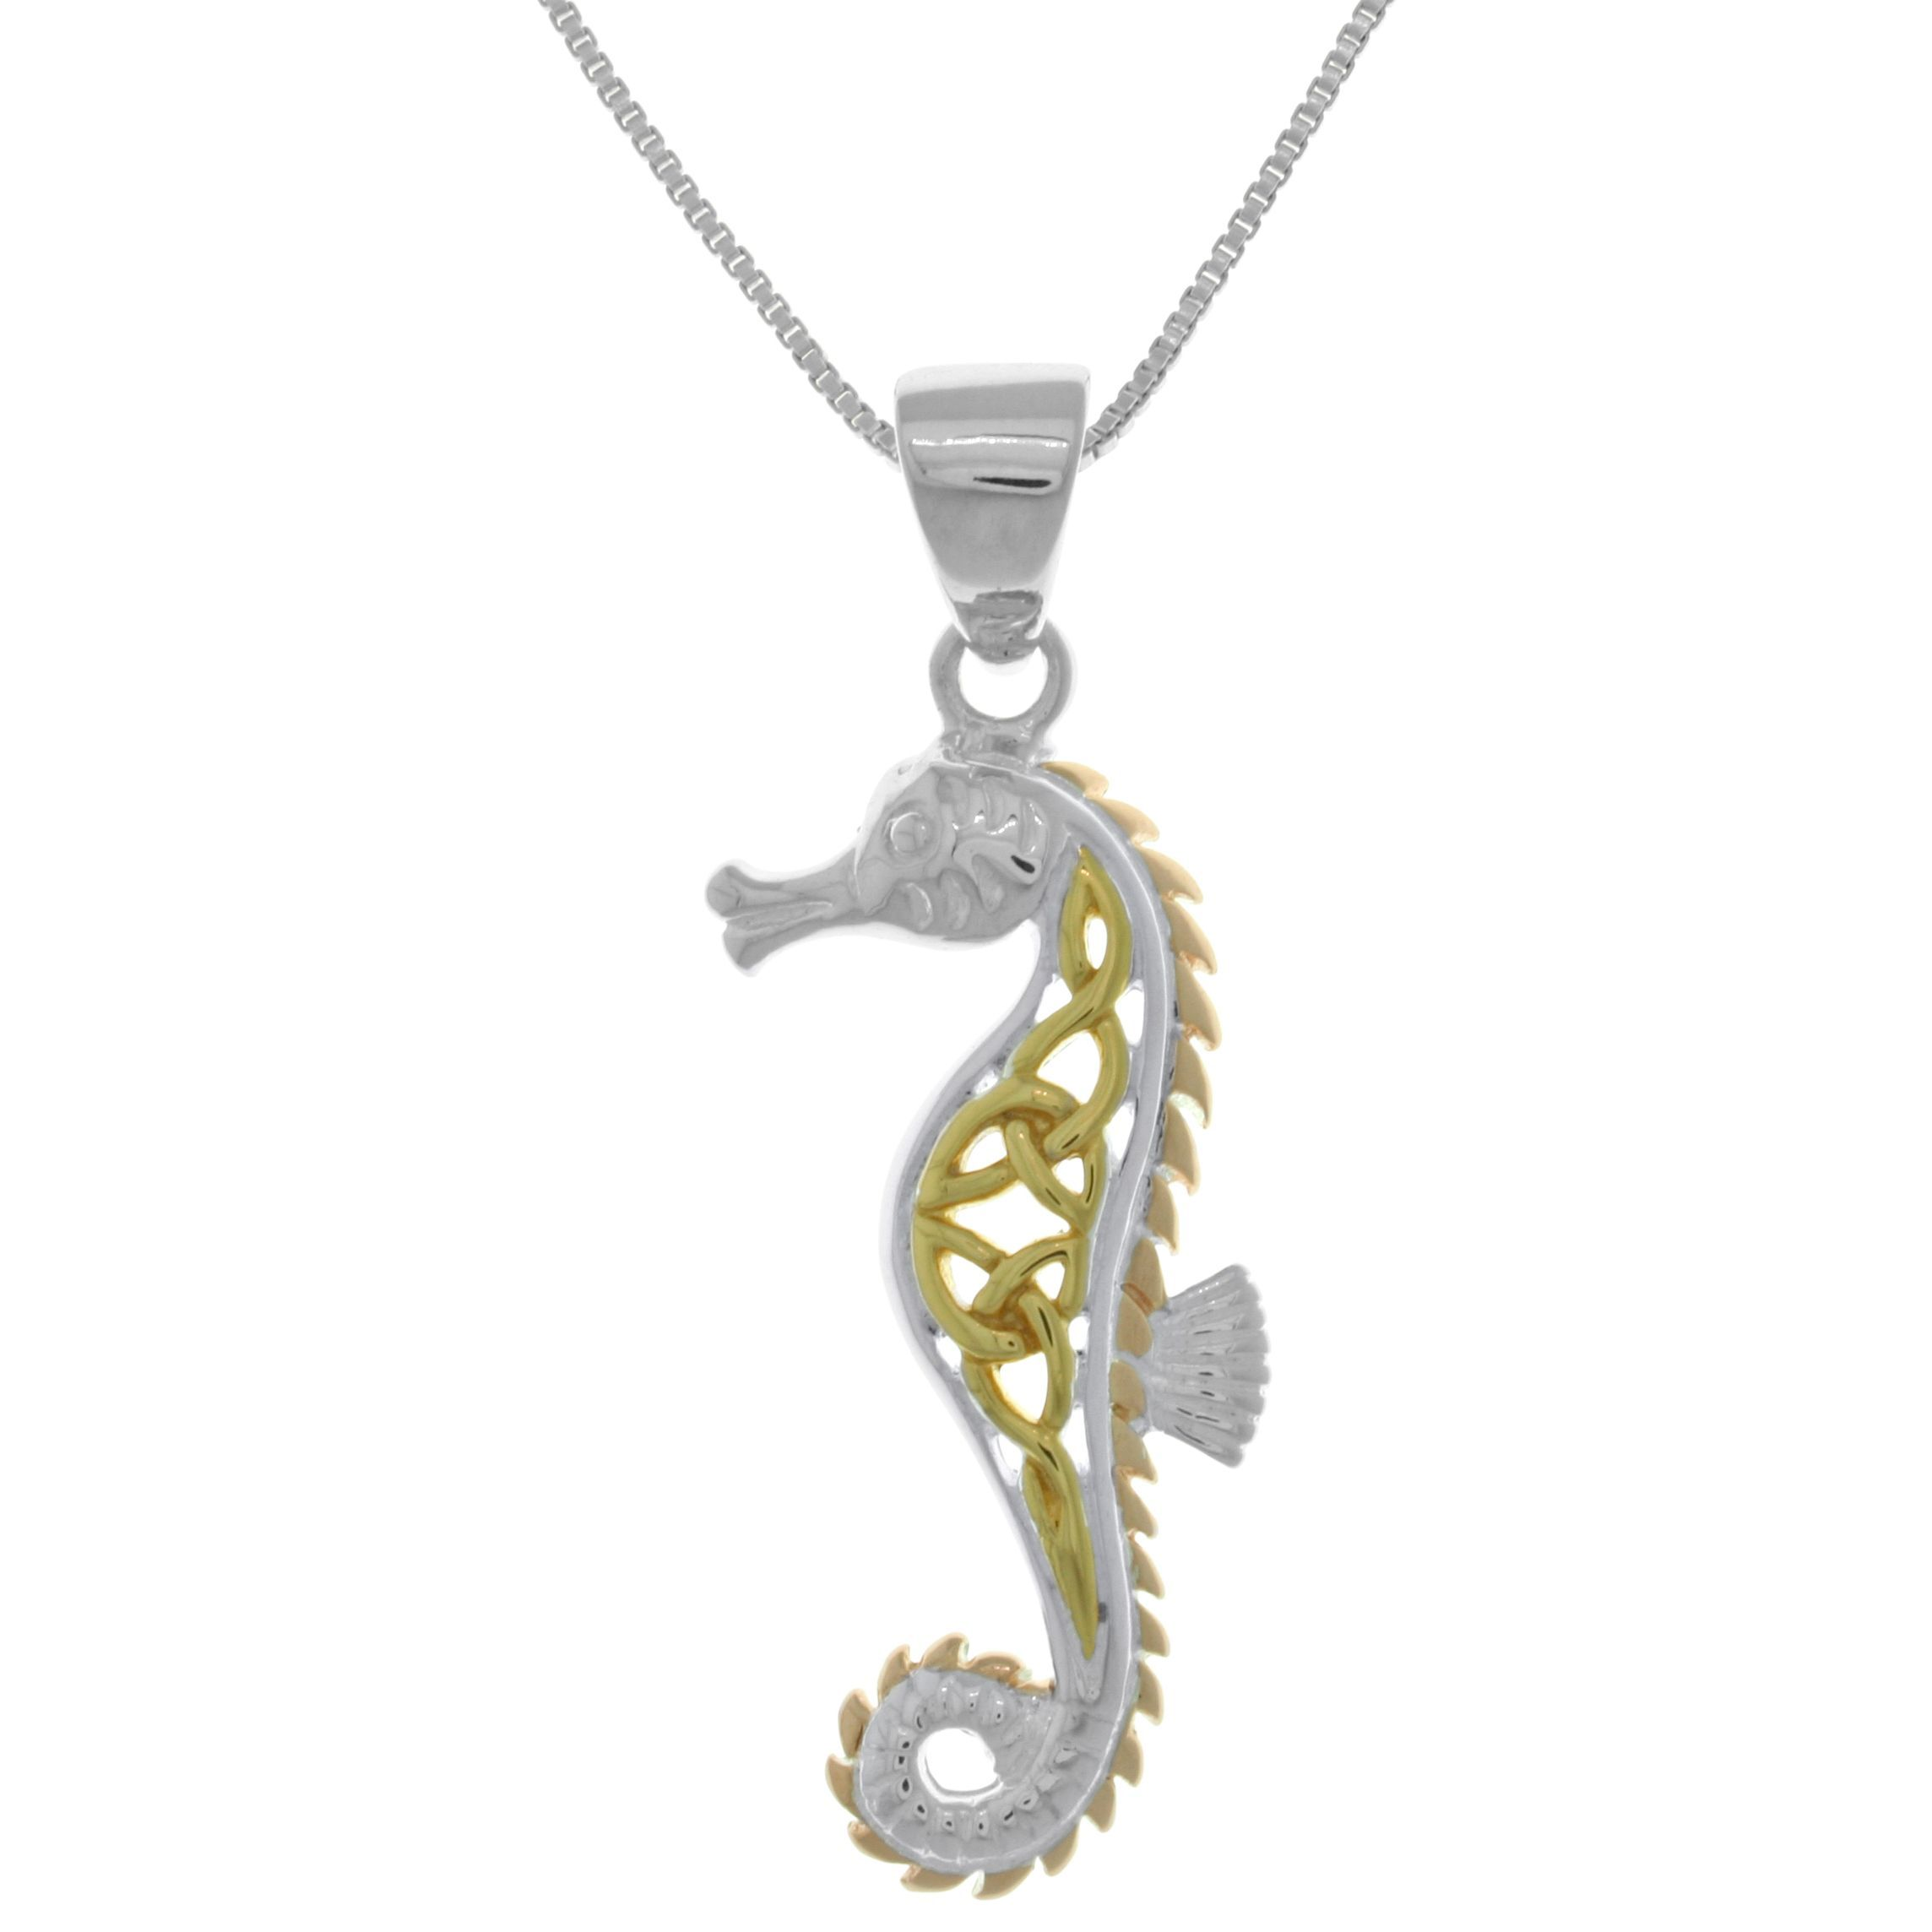 jewelry seahorse usa pendant silver freedom sterling necklace